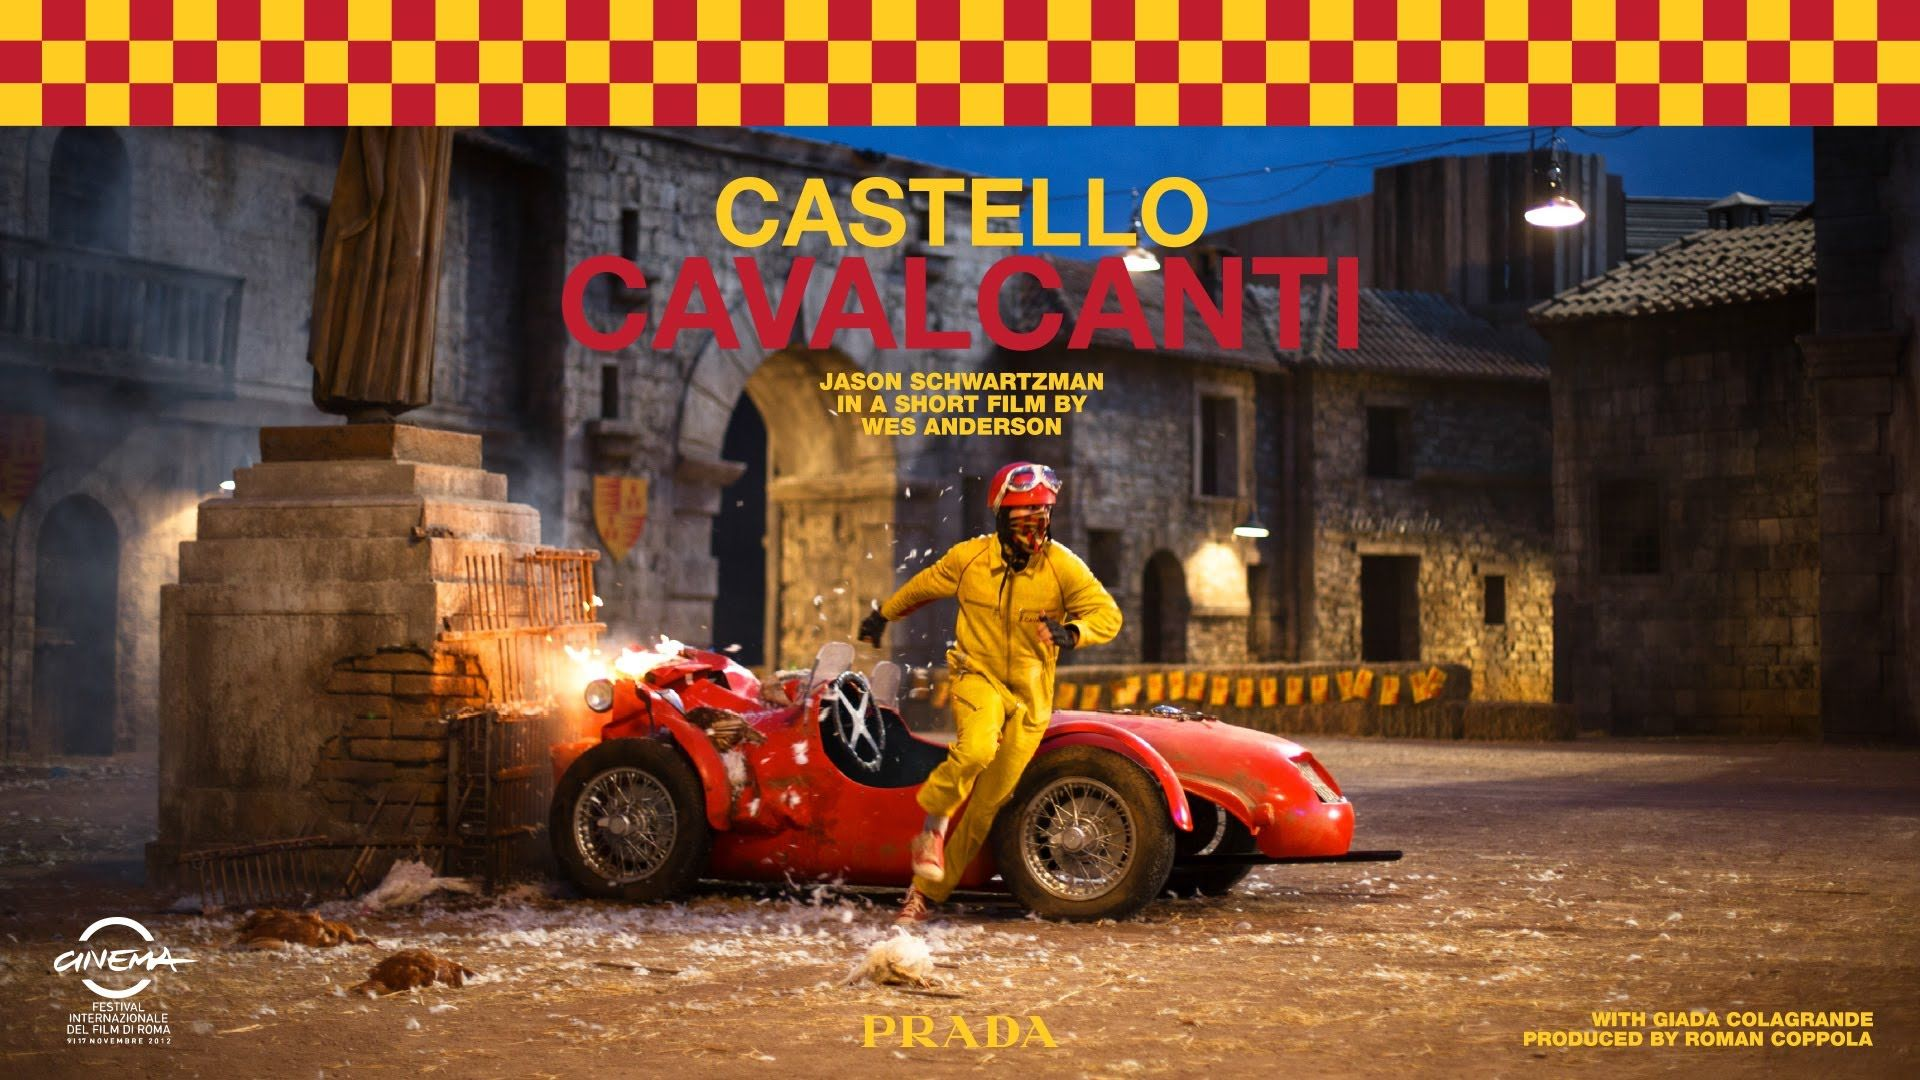 """I wish more brands would have the balls to do branded content that's not overly branded. Tip of the cap to you Prada! """"CASTELLO CAVALCANTI"""" by Wes Anderson #TheGood"""